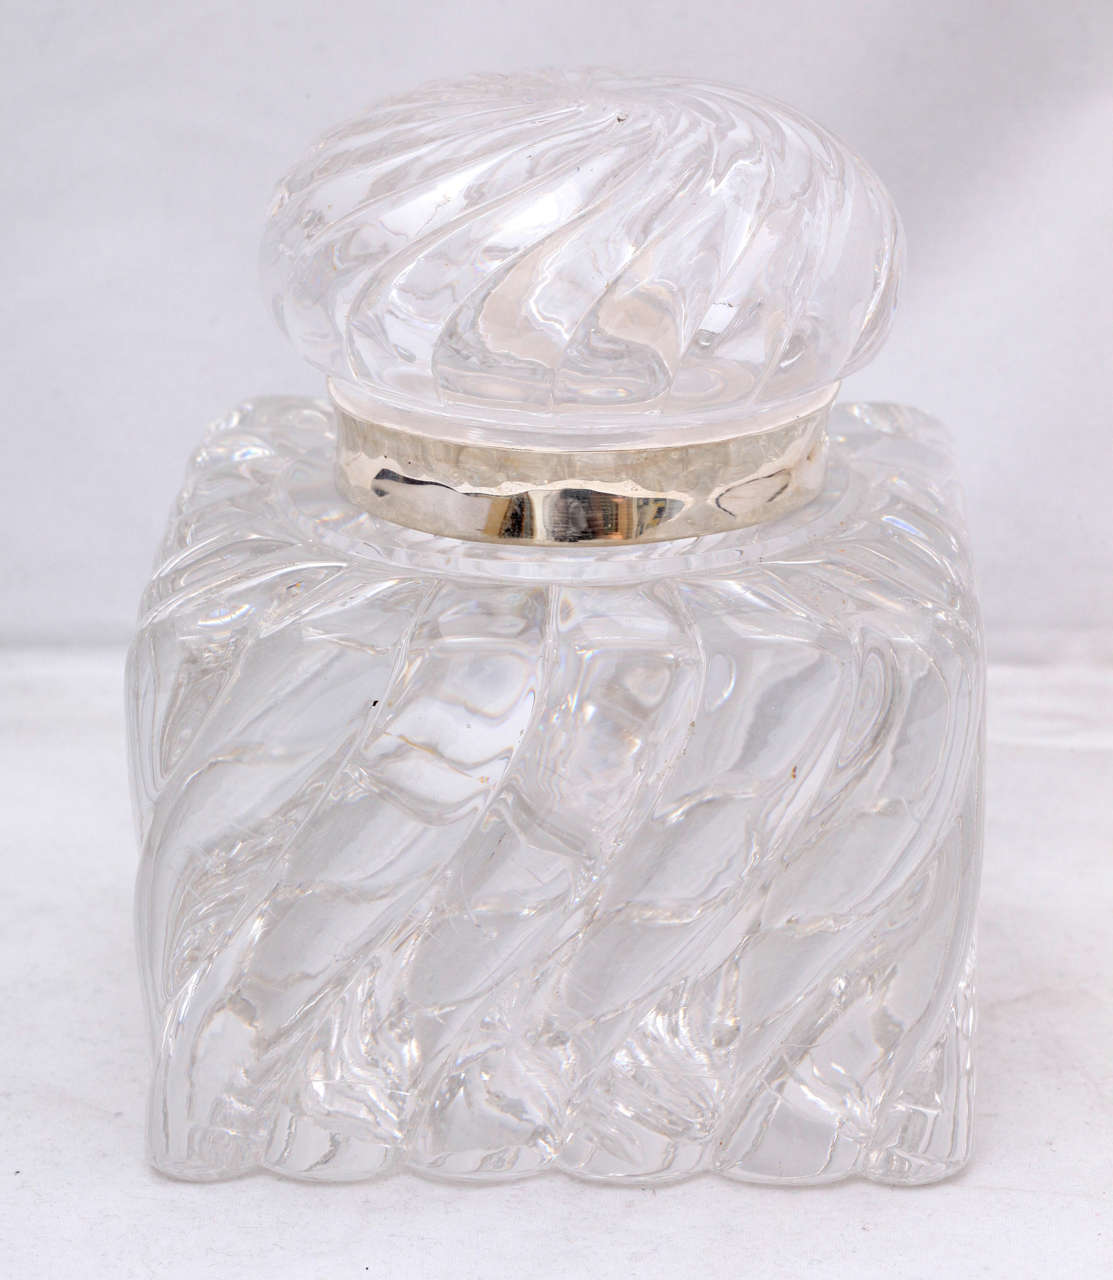 American Very Large Victorian Sterling Silver-Mounted Swirled Crystal Inkwell For Sale